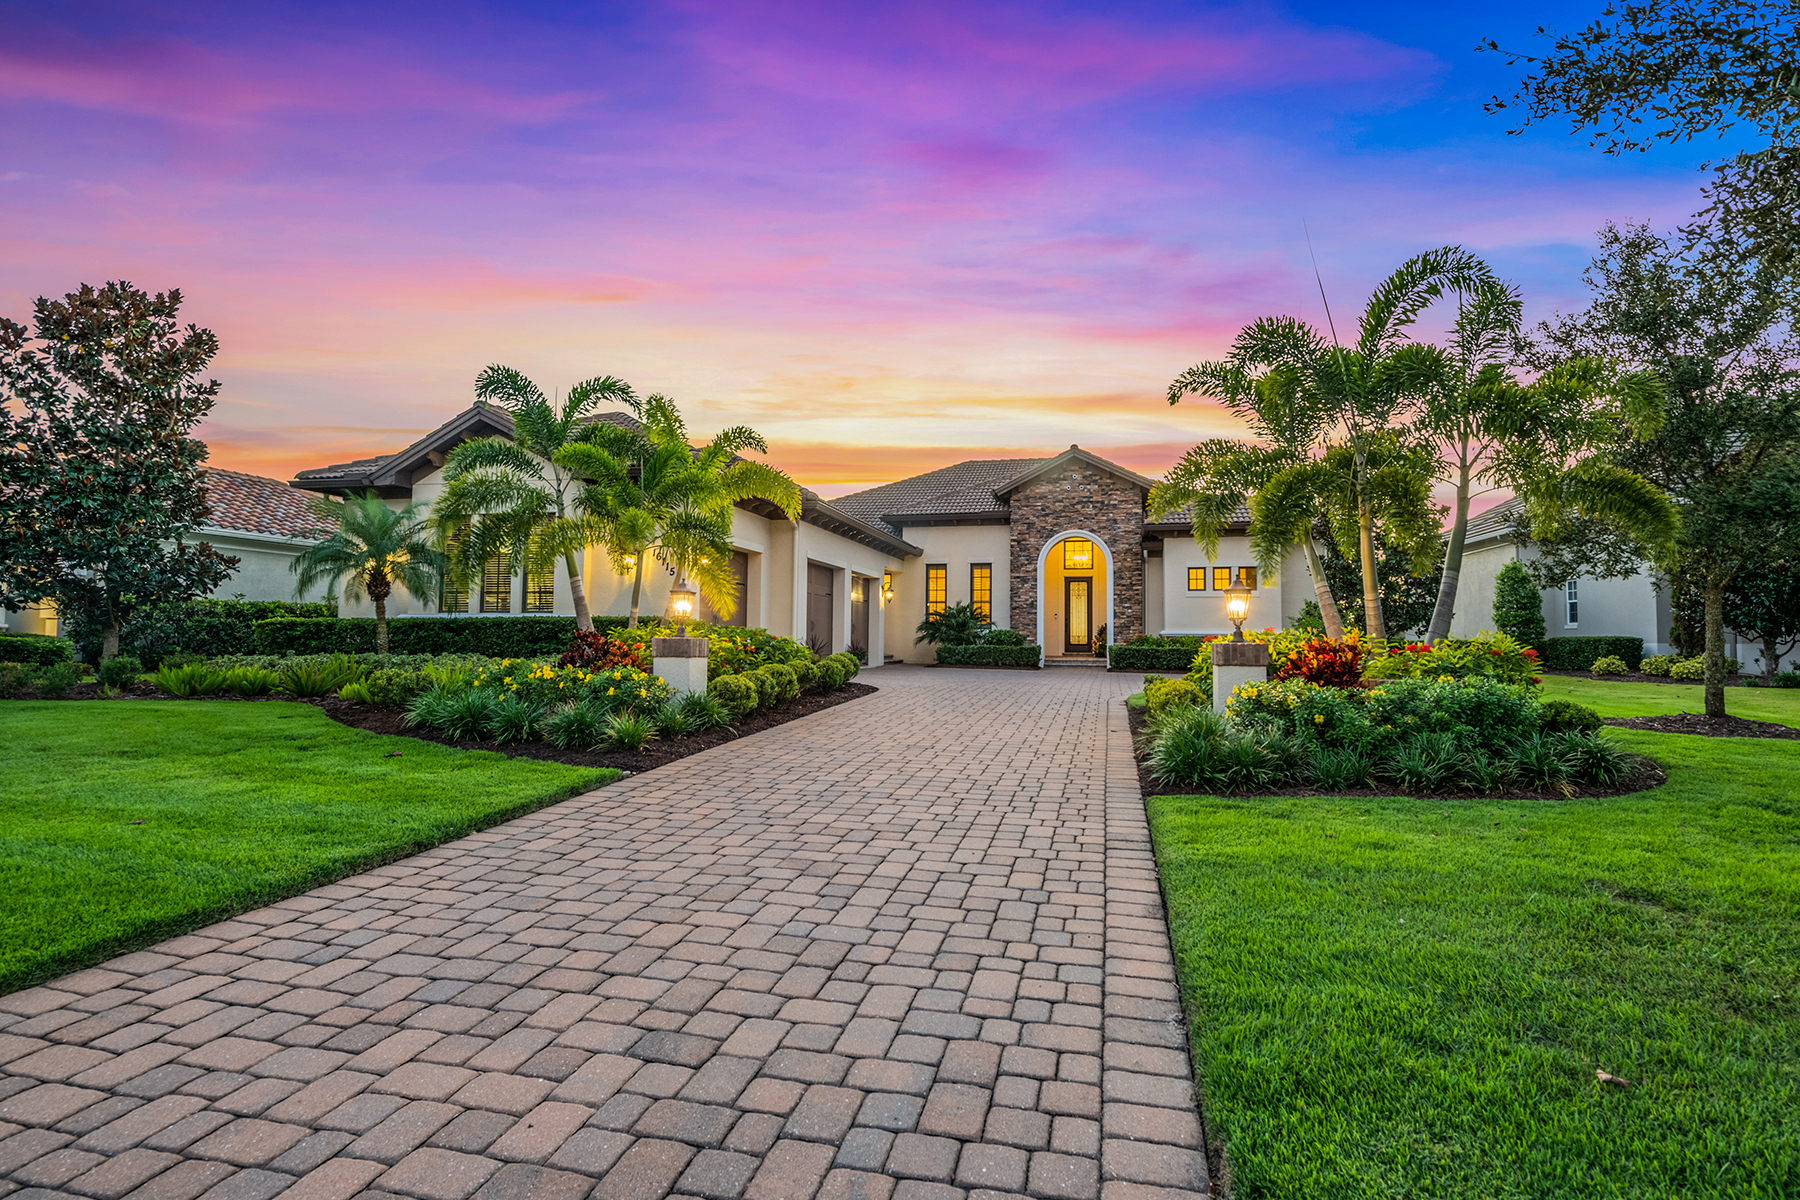 Single Family Homes for Sale at 16115 Daysailor Trl Lakewood Ranch, Florida 34202 United States